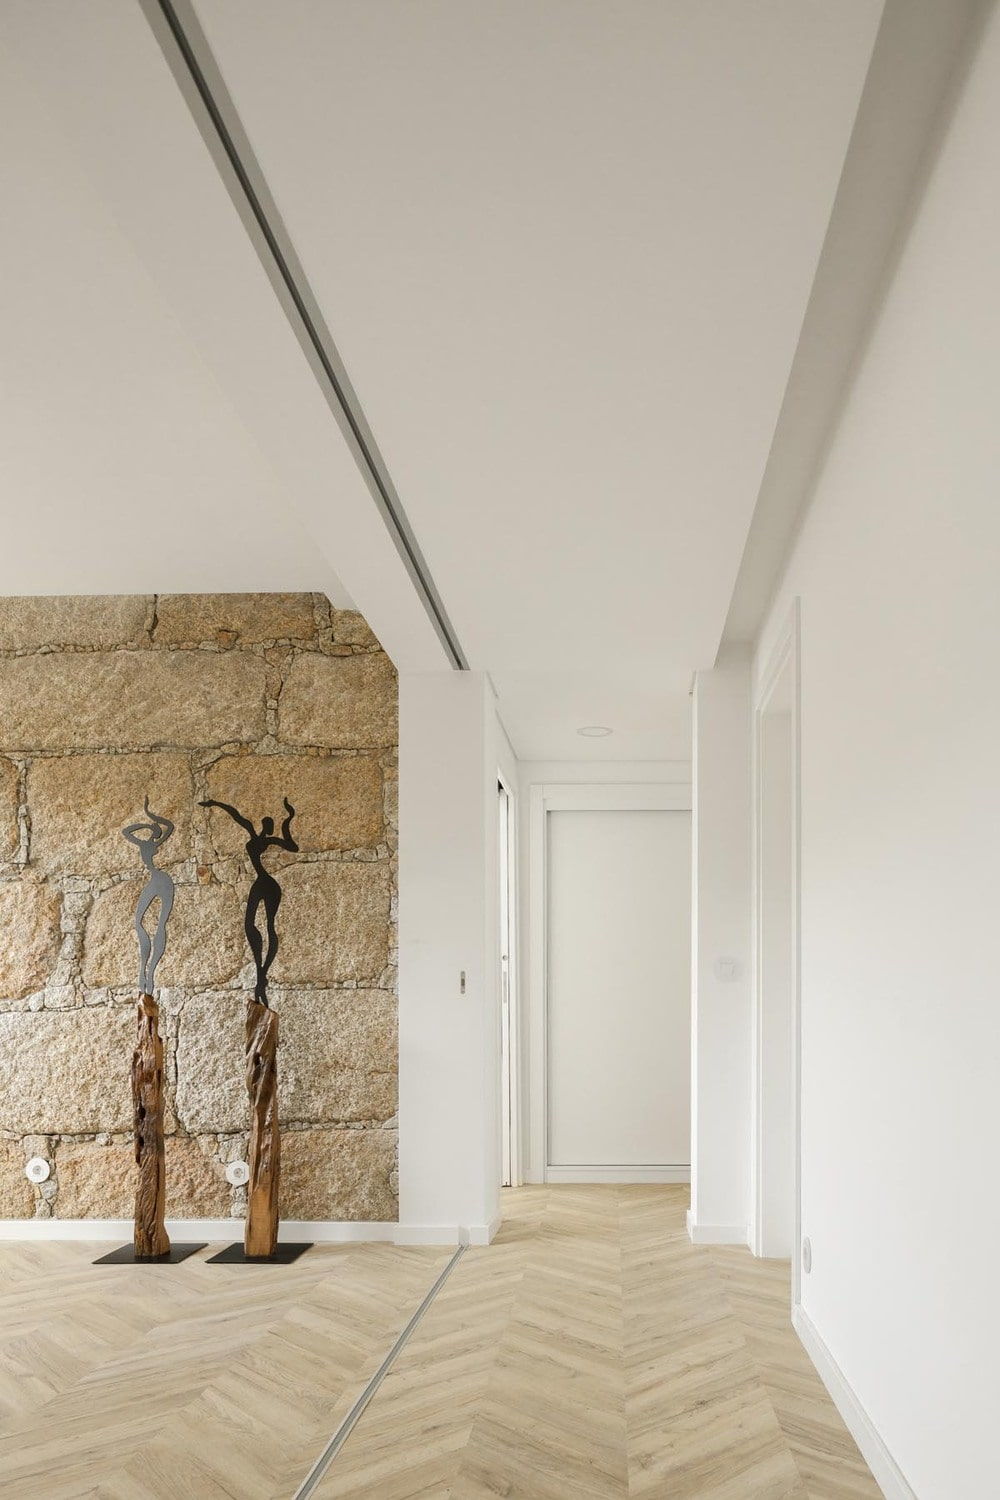 On the other side is another textured stone beige wall that complements the bright white ceiling and folding doors.